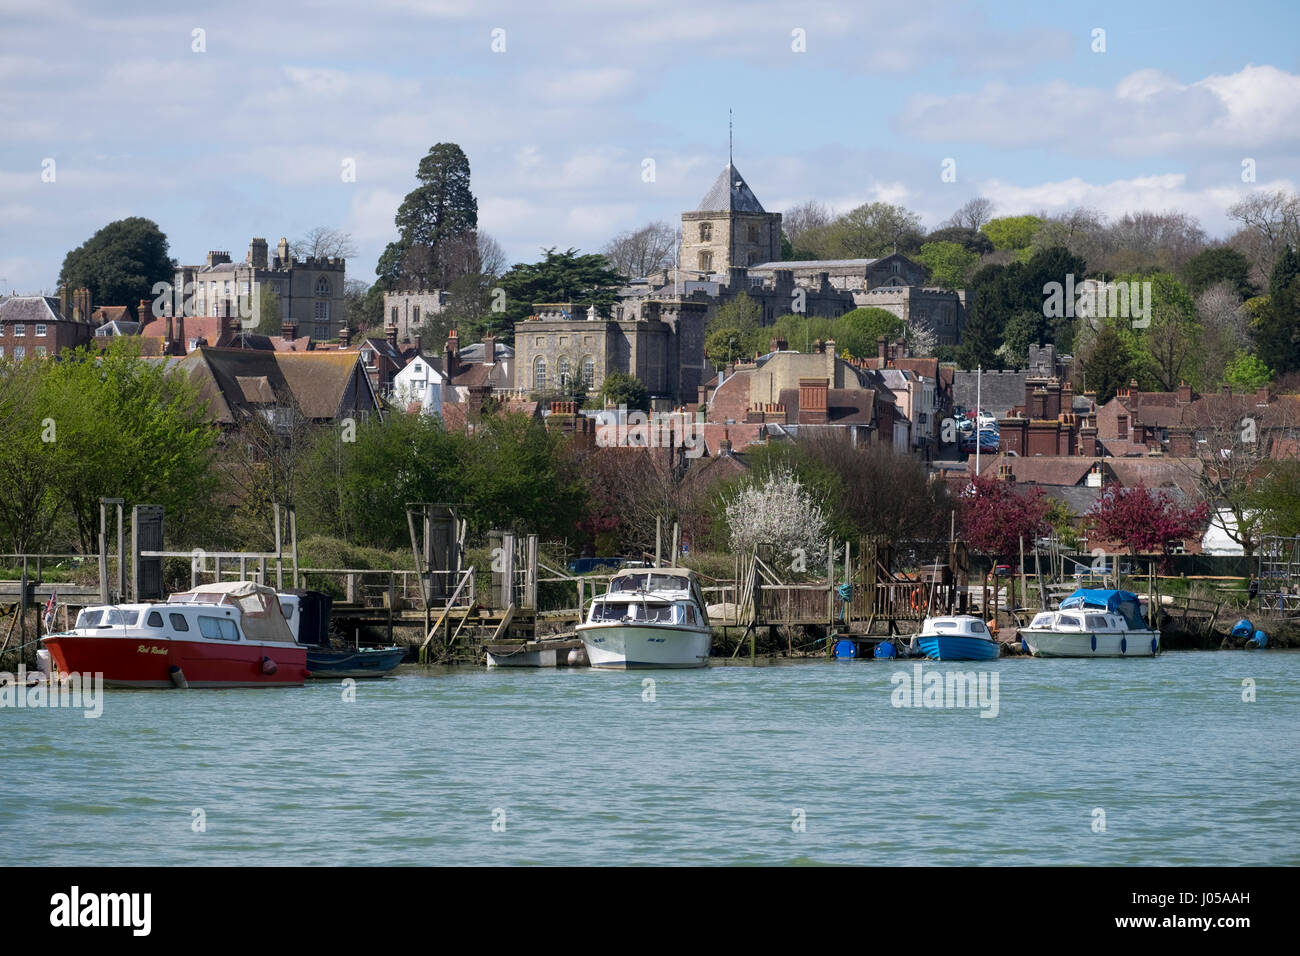 Arundel, UK. 10th April 2017. UK Weather. With temperatures reaching the mid to high teens, the boats moored on the glistening water and the castle towering on the mound above makes the banks of the river Arun in in the ancient town of Arundel in West Sussex a very pleasant place to take a afternoon stroll. © Photovision Images News / Alamy Live News. Credit: Photovision Images News/Alamy Live News Stock Photo